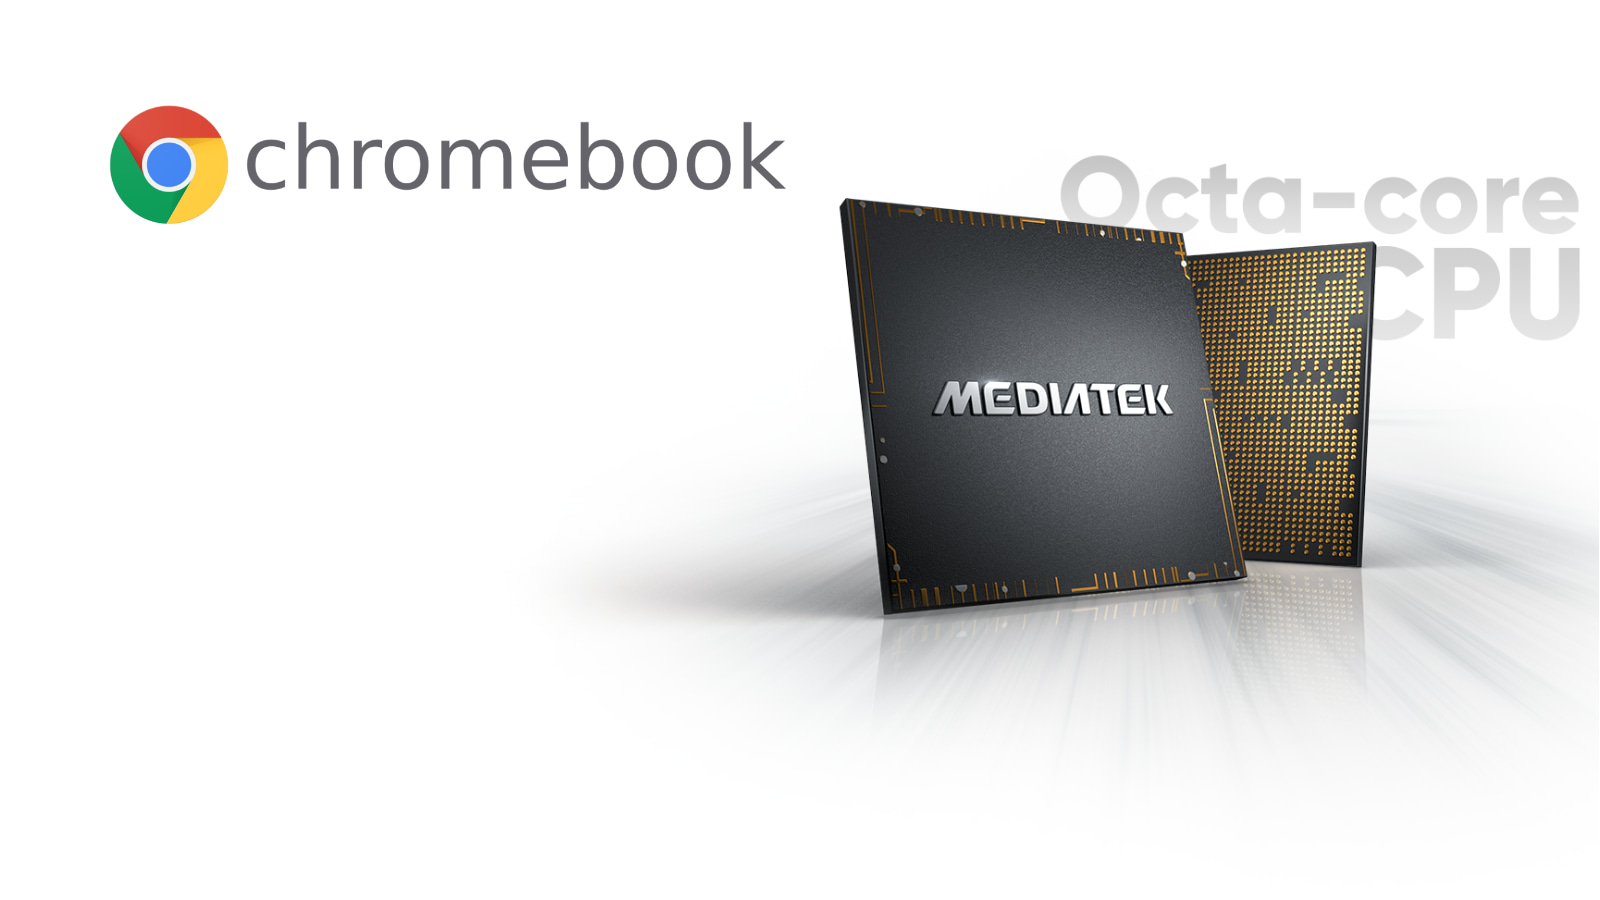 Here's the first flagship MediaTek MT8195 Chromebook in development – 'Cherry'